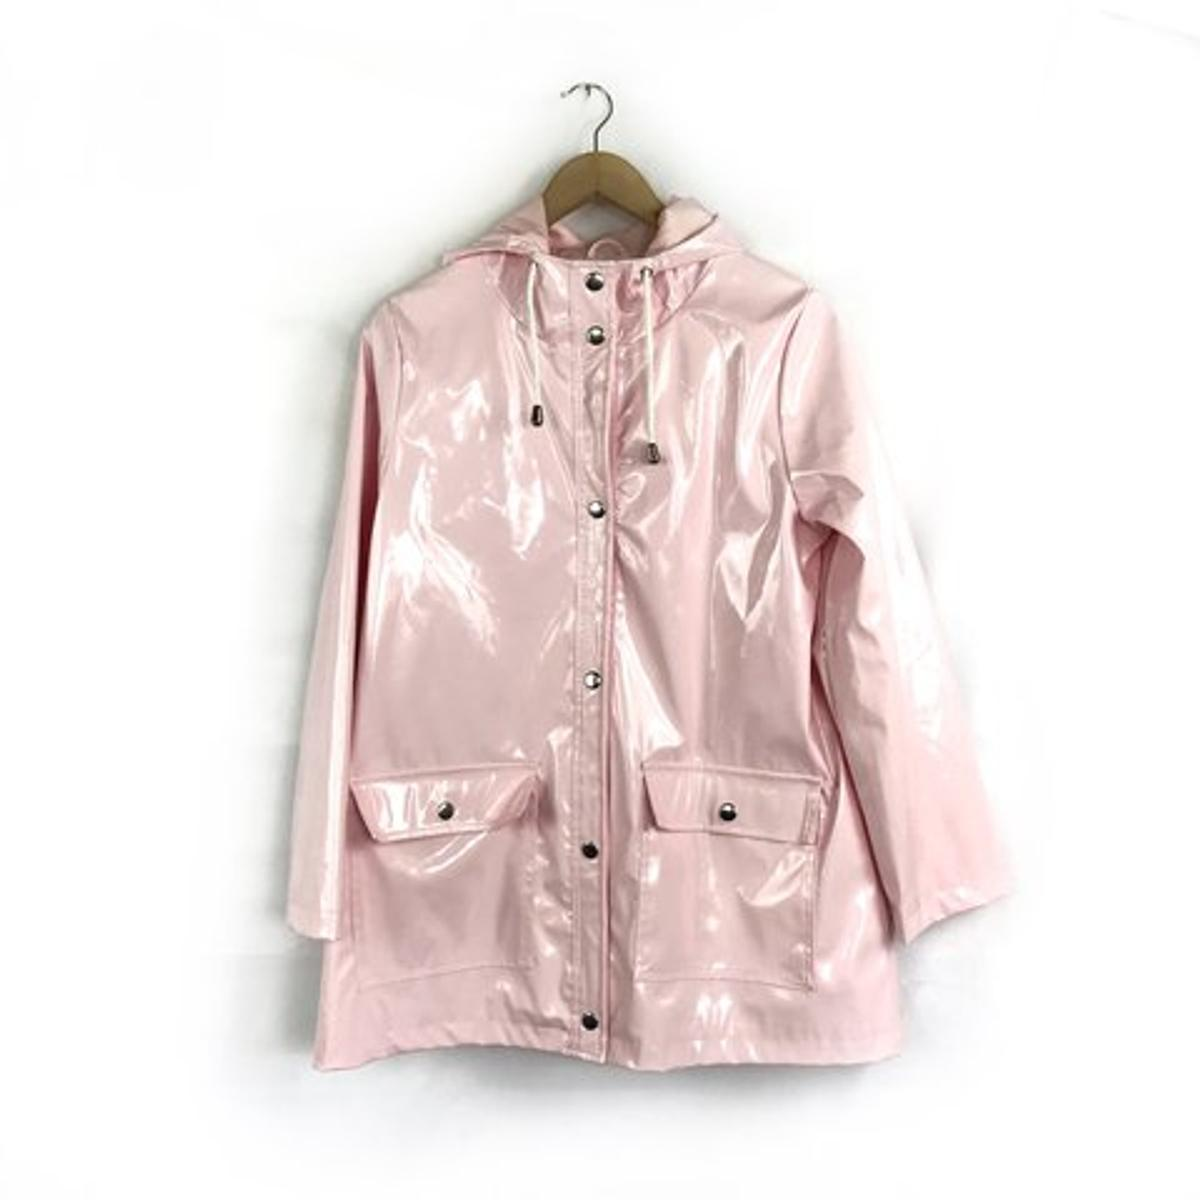 Blush pink rain mack size 8-10 hood with pullstrings 2 front pockets New Will post with all what is going on now completely understand